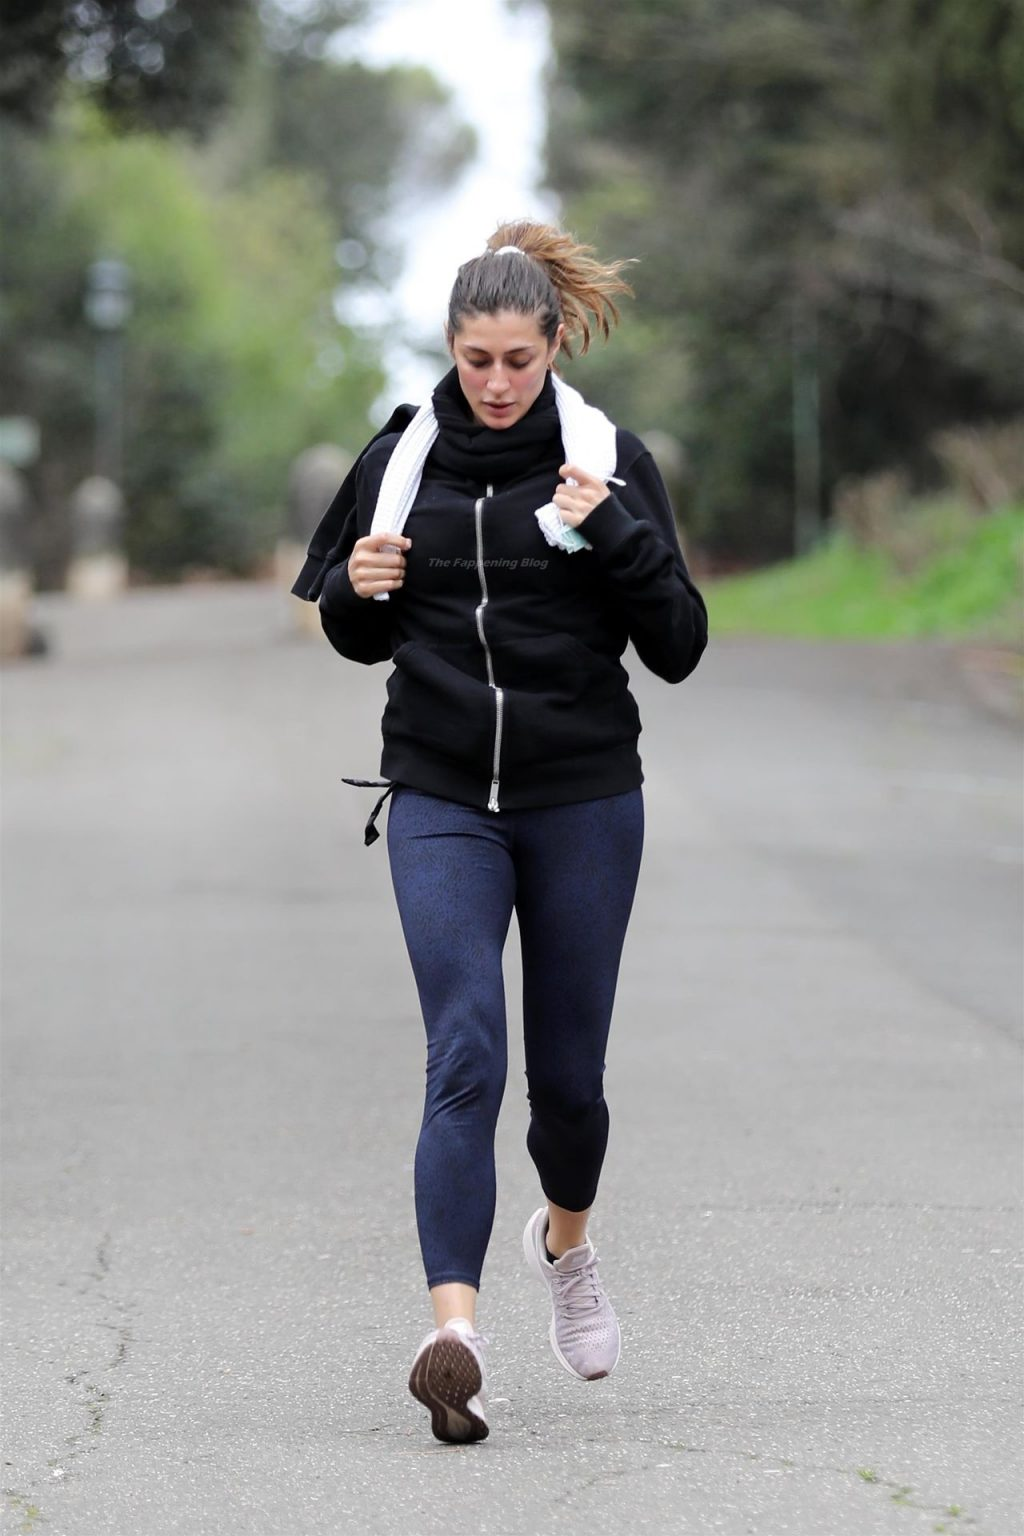 Elisa Isoardi Works Out in a Park in Rome (22 Photos)